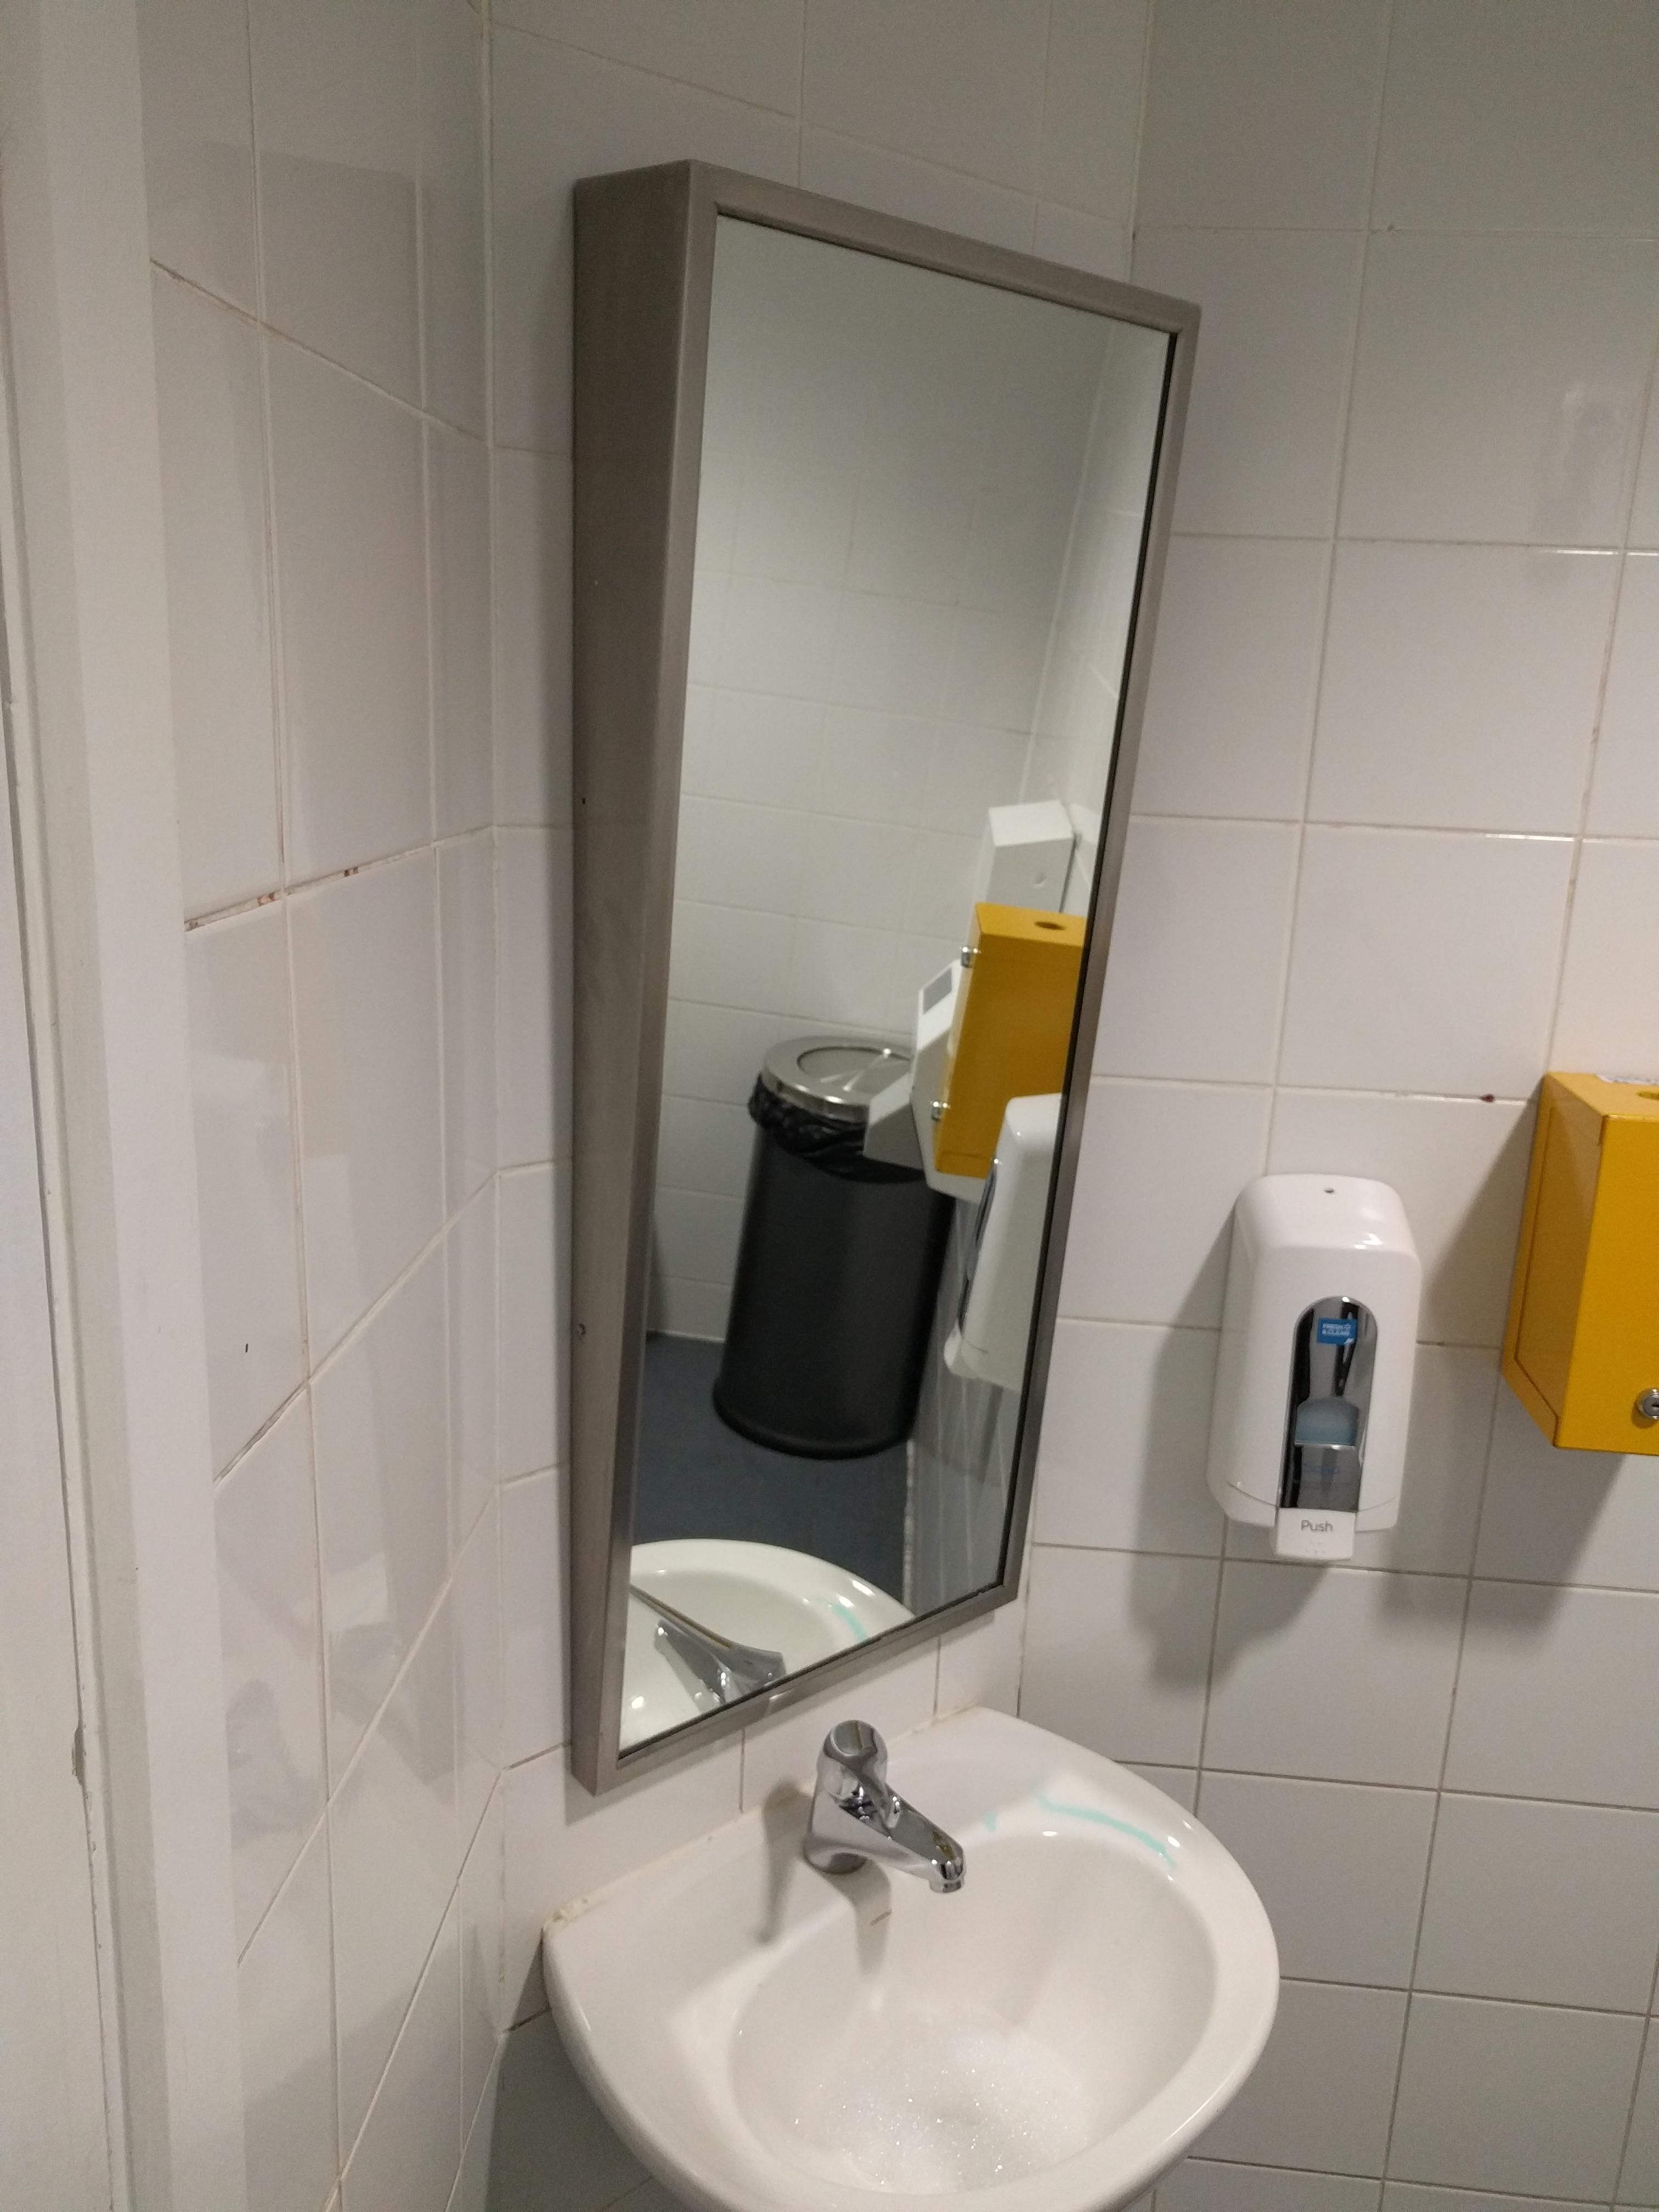 This Mirror In A Disabled Toilet Is Angled Downwards For